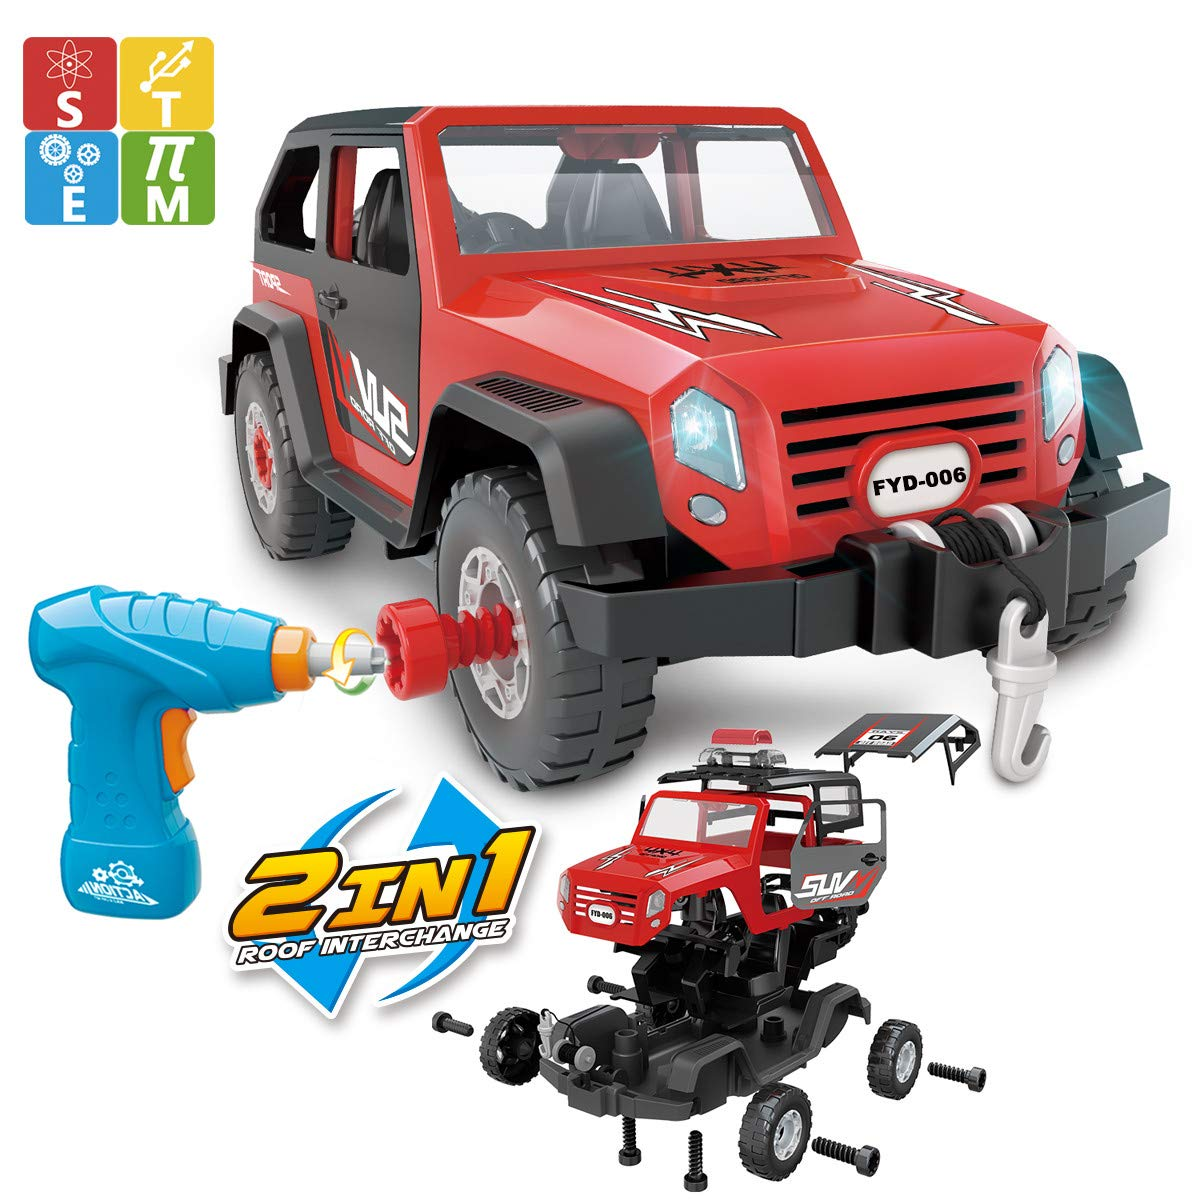 FYD Take Apart Jeep Car STEM Learning Assembly Playset with Functional Battery-Powered Drill - Early Childhood Developmental Skills Construction Toy for Kids Aged 3 and up